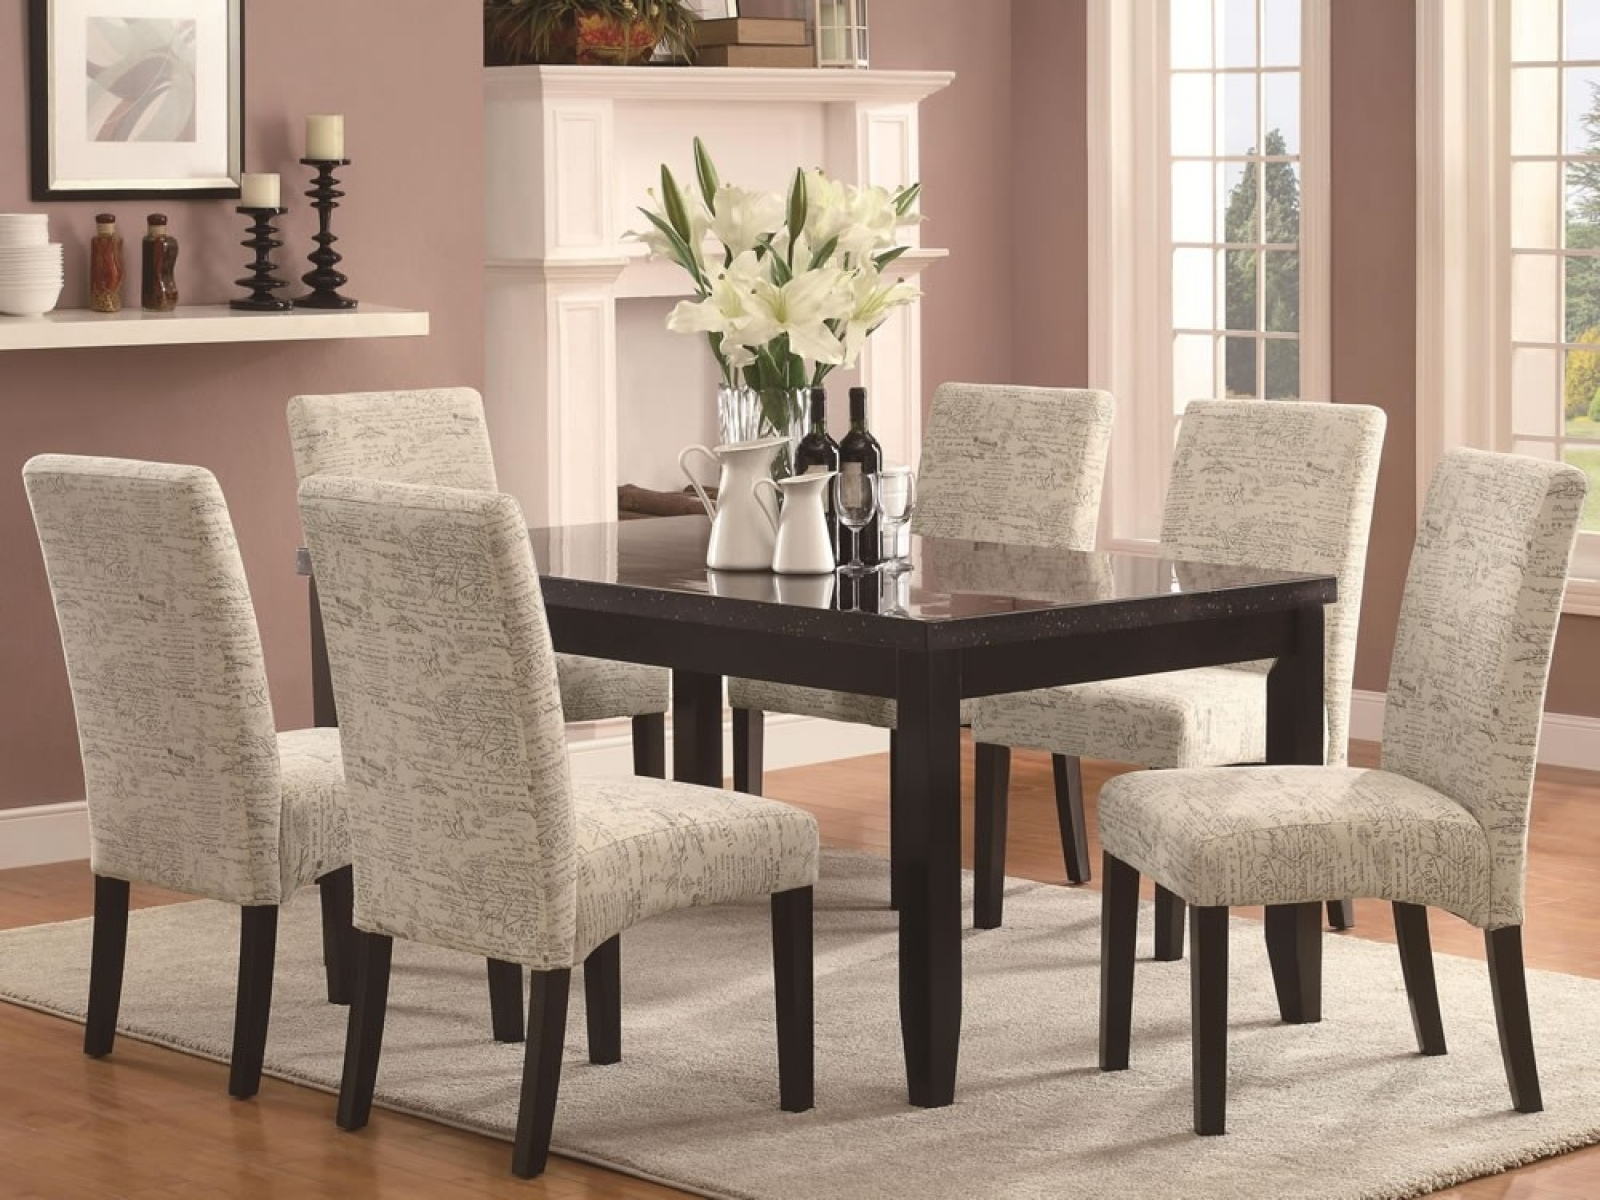 Most Up To Date Fabric Covered Dining Chairs Regarding Fancy Dining Room With Upholstered Dining Chair Also Wood Dining (Gallery 8 of 25)